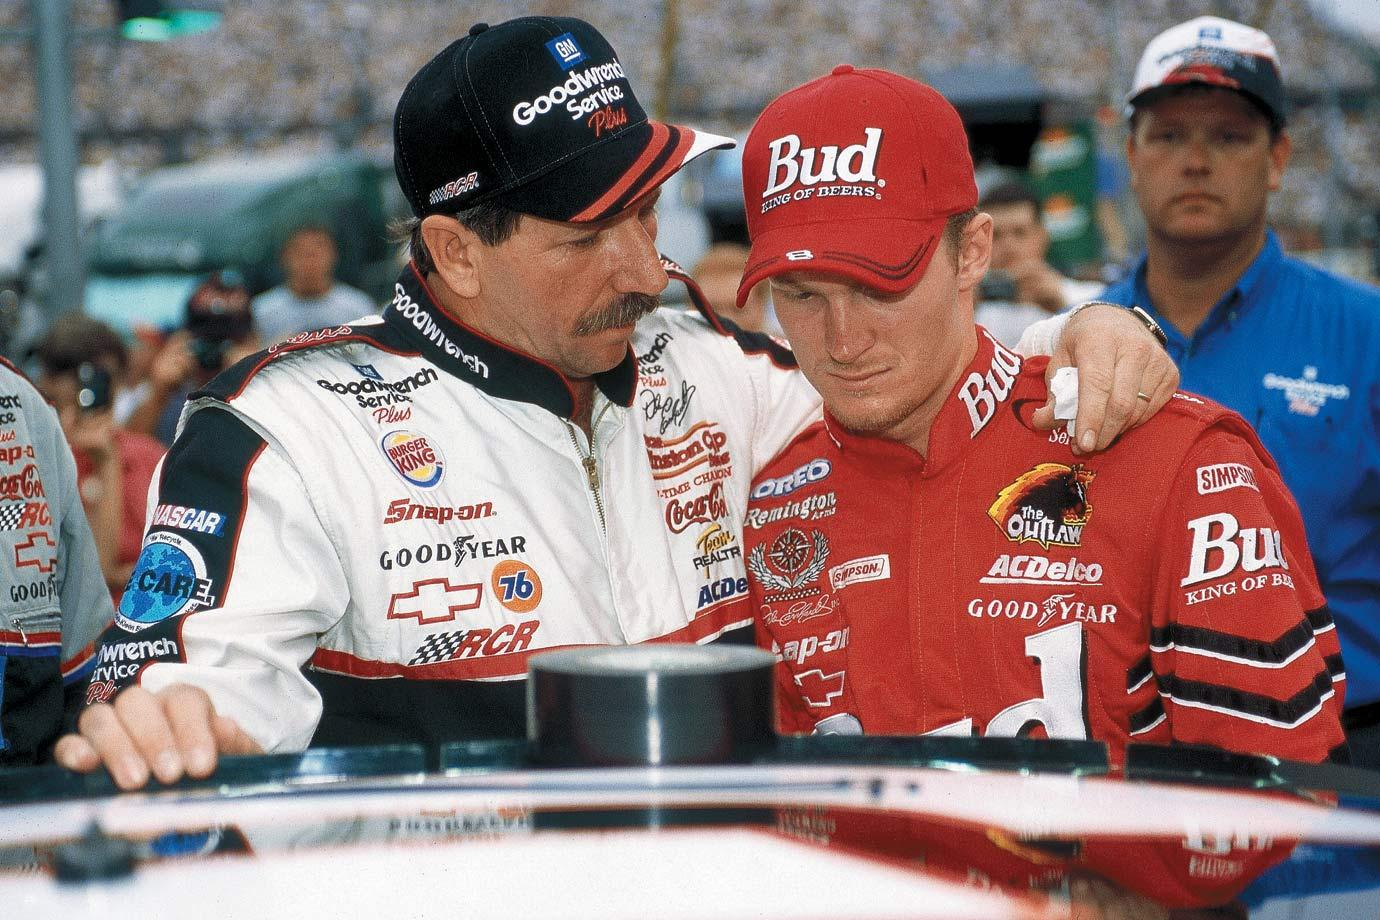 Dale Earnhardt is putting his right on his son, Dale Earnhardt Jr.'s shoulder